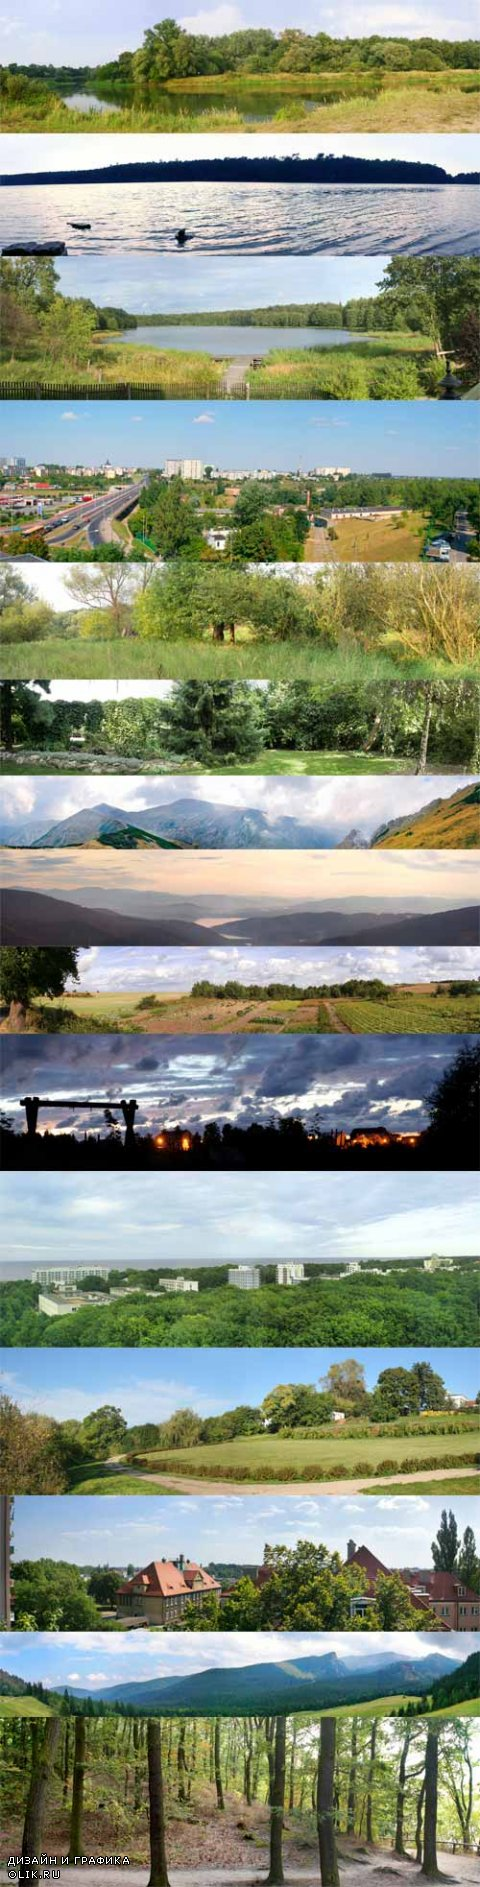 The beauty of nature panoramic photos